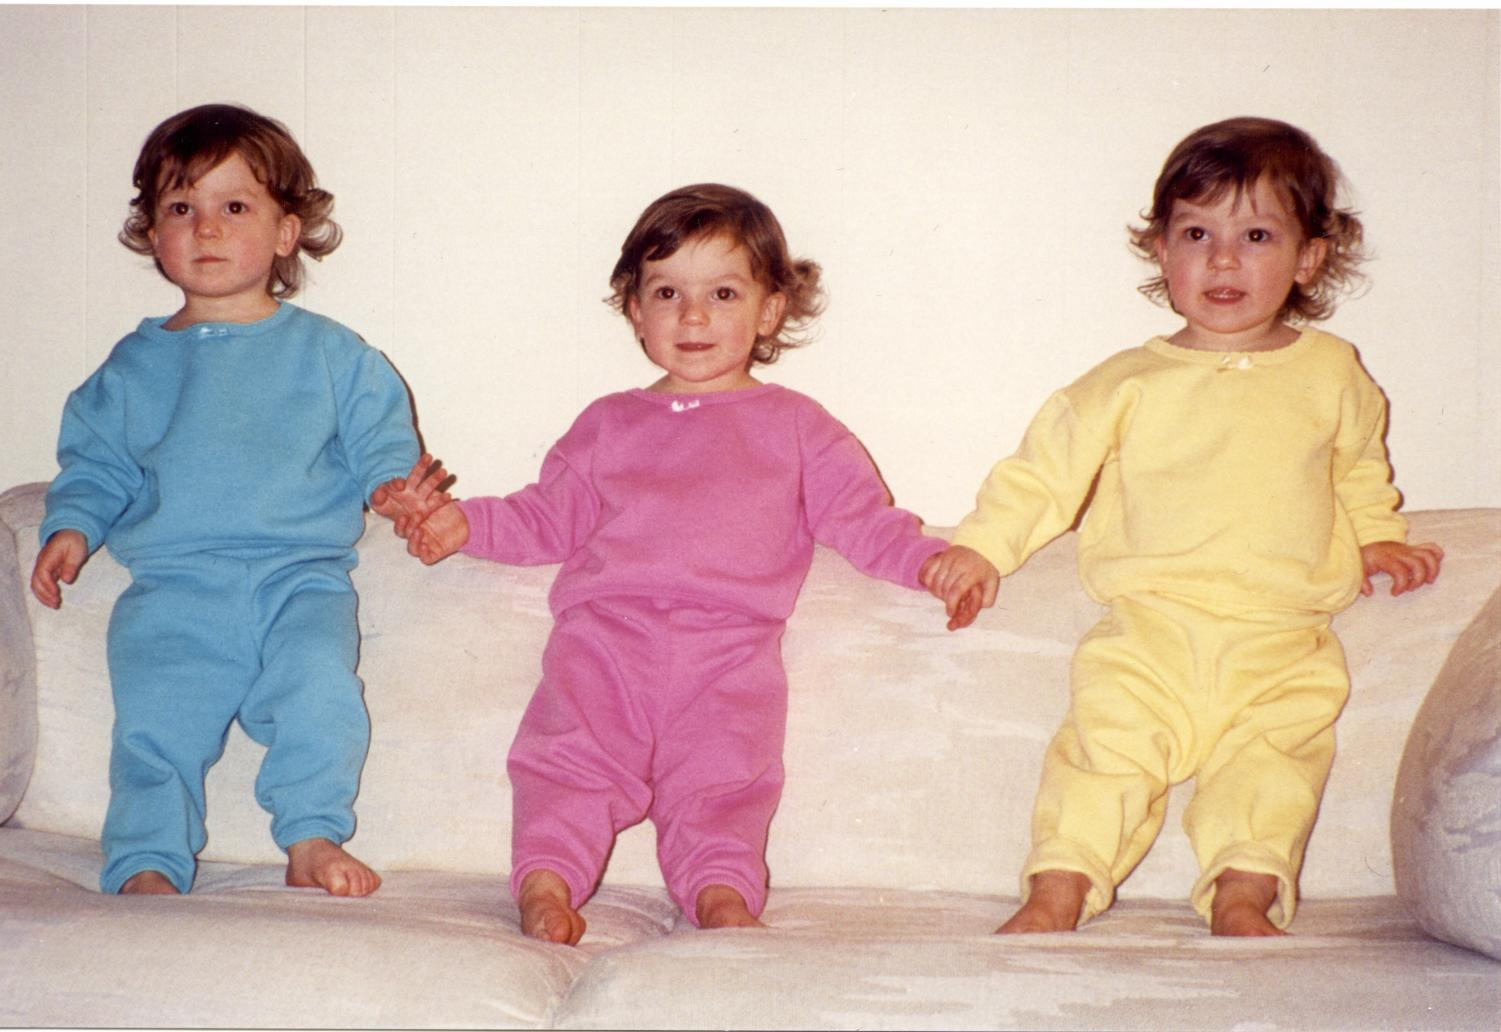 The Ponicki triplets while they were younger. The sisters were known throughout their community as identical triplets, but they now consistently meet astonishment on the streets from passersby when they see the triplets walking on campus.